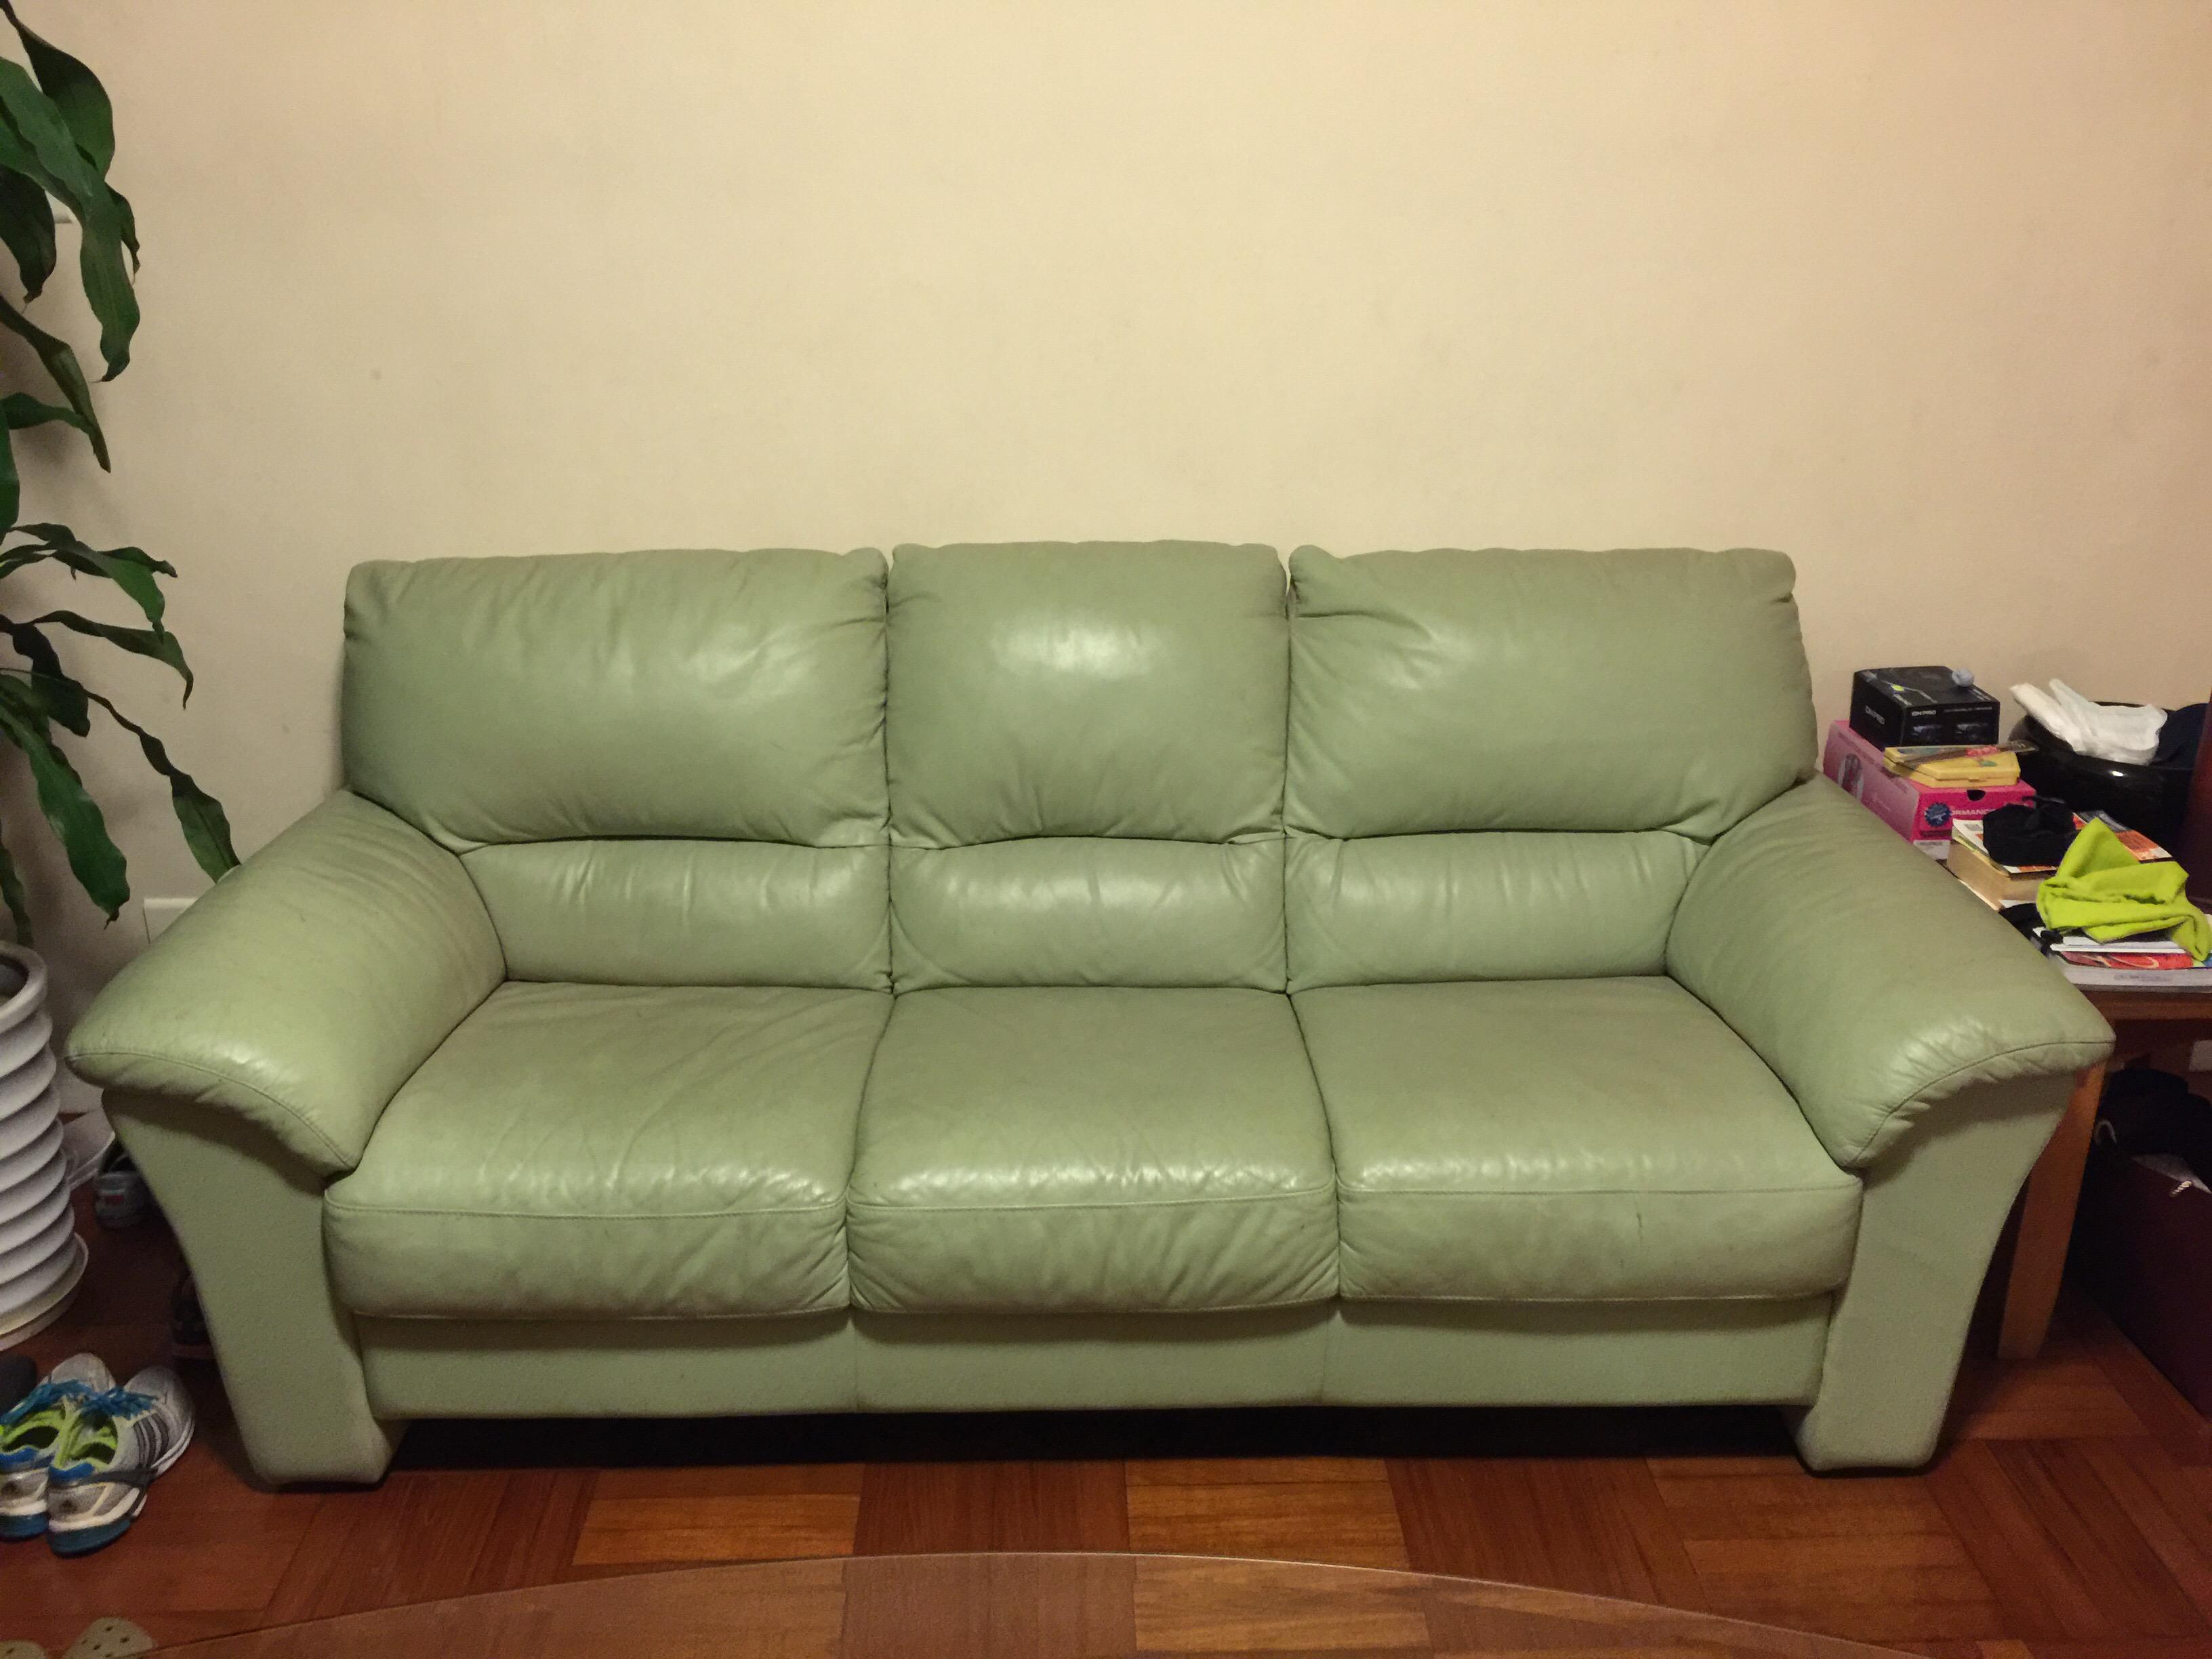 Lazy Boy Reclining Sofa Warranty 100 Recliner Sofa Spare Parts Catnapper Recliner Replace Po